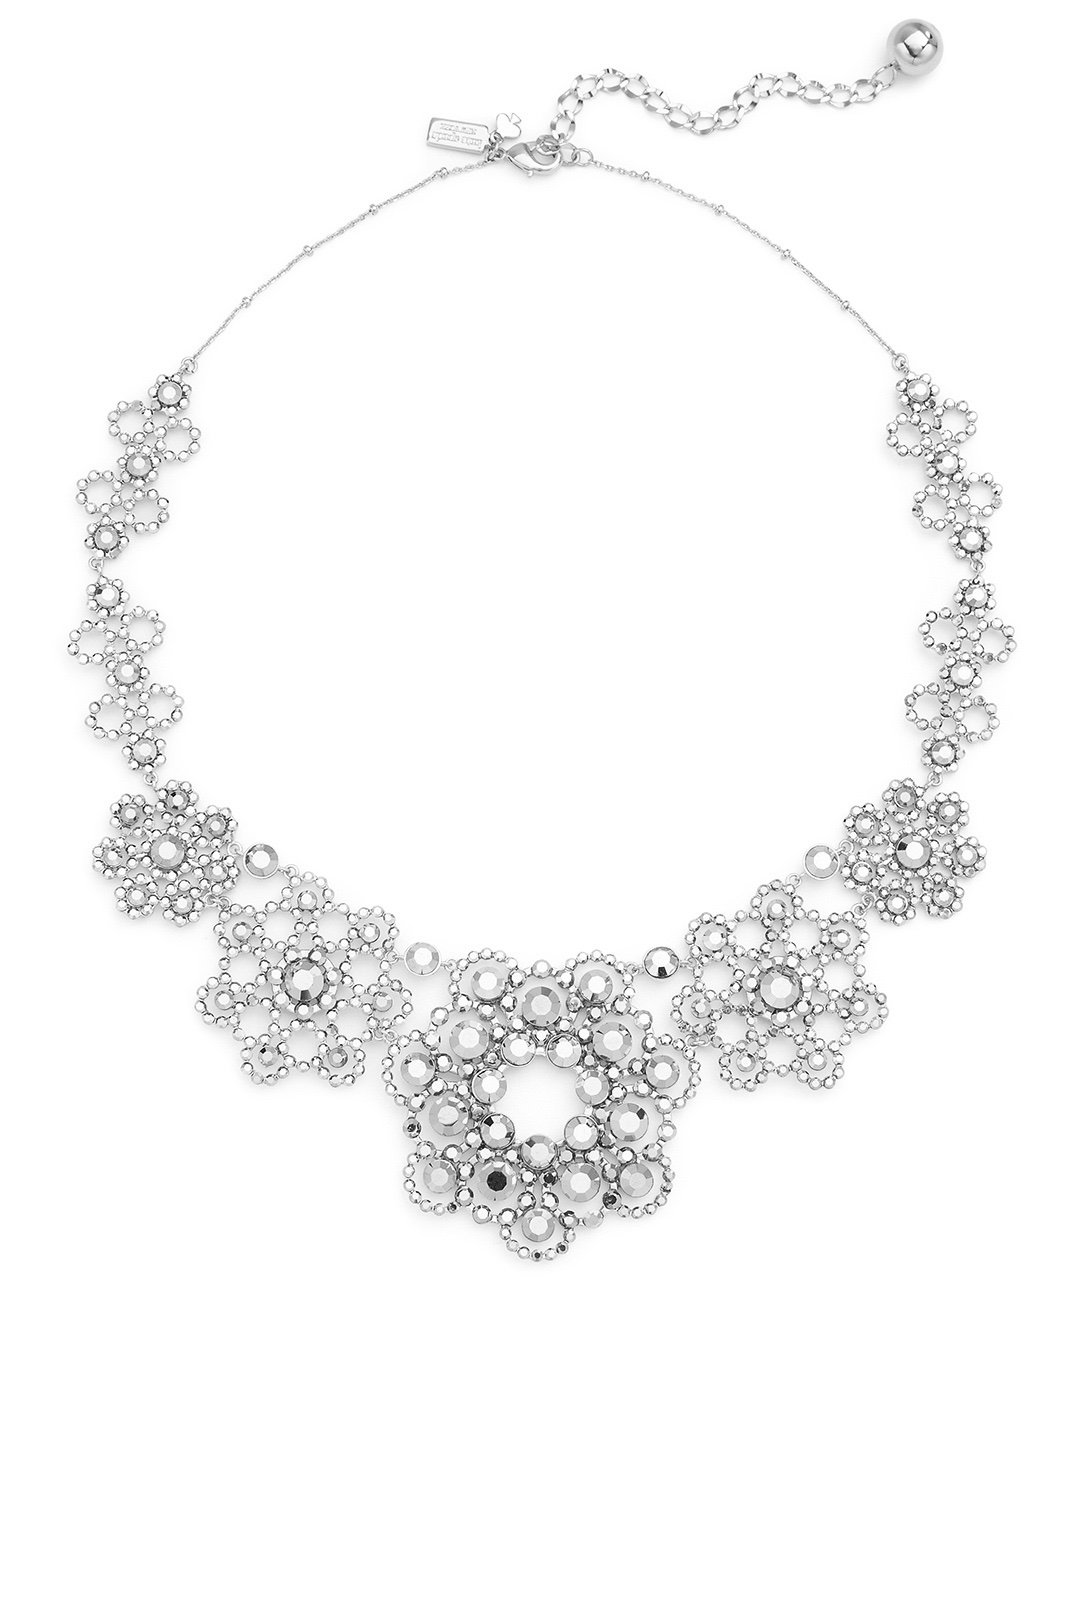 Kate Spade New York Silver Crystal Lace Necklace by Kate Spade New York (Image #1)